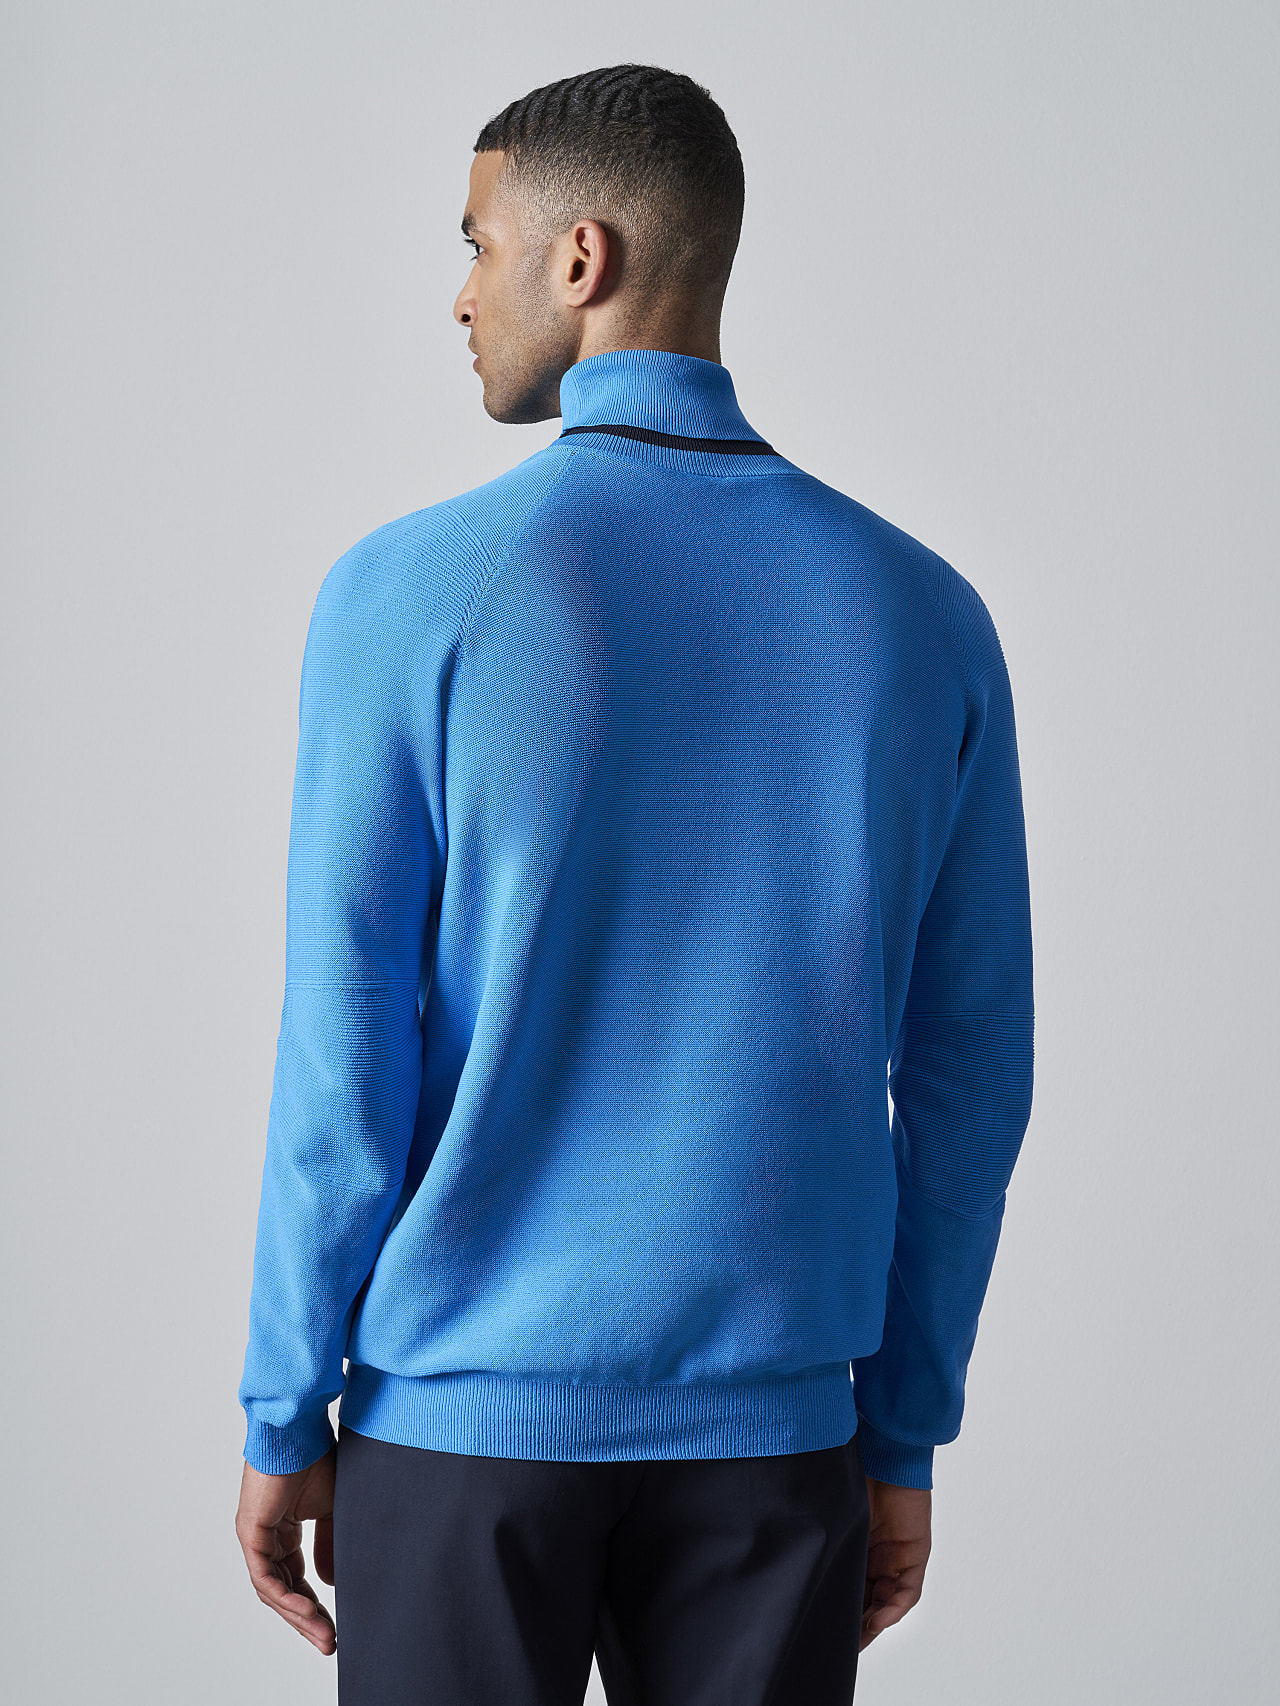 FUZZO V1.Y5.02 Seamless 3D Knit Roll-Neck Jumper blue Front Main Alpha Tauri